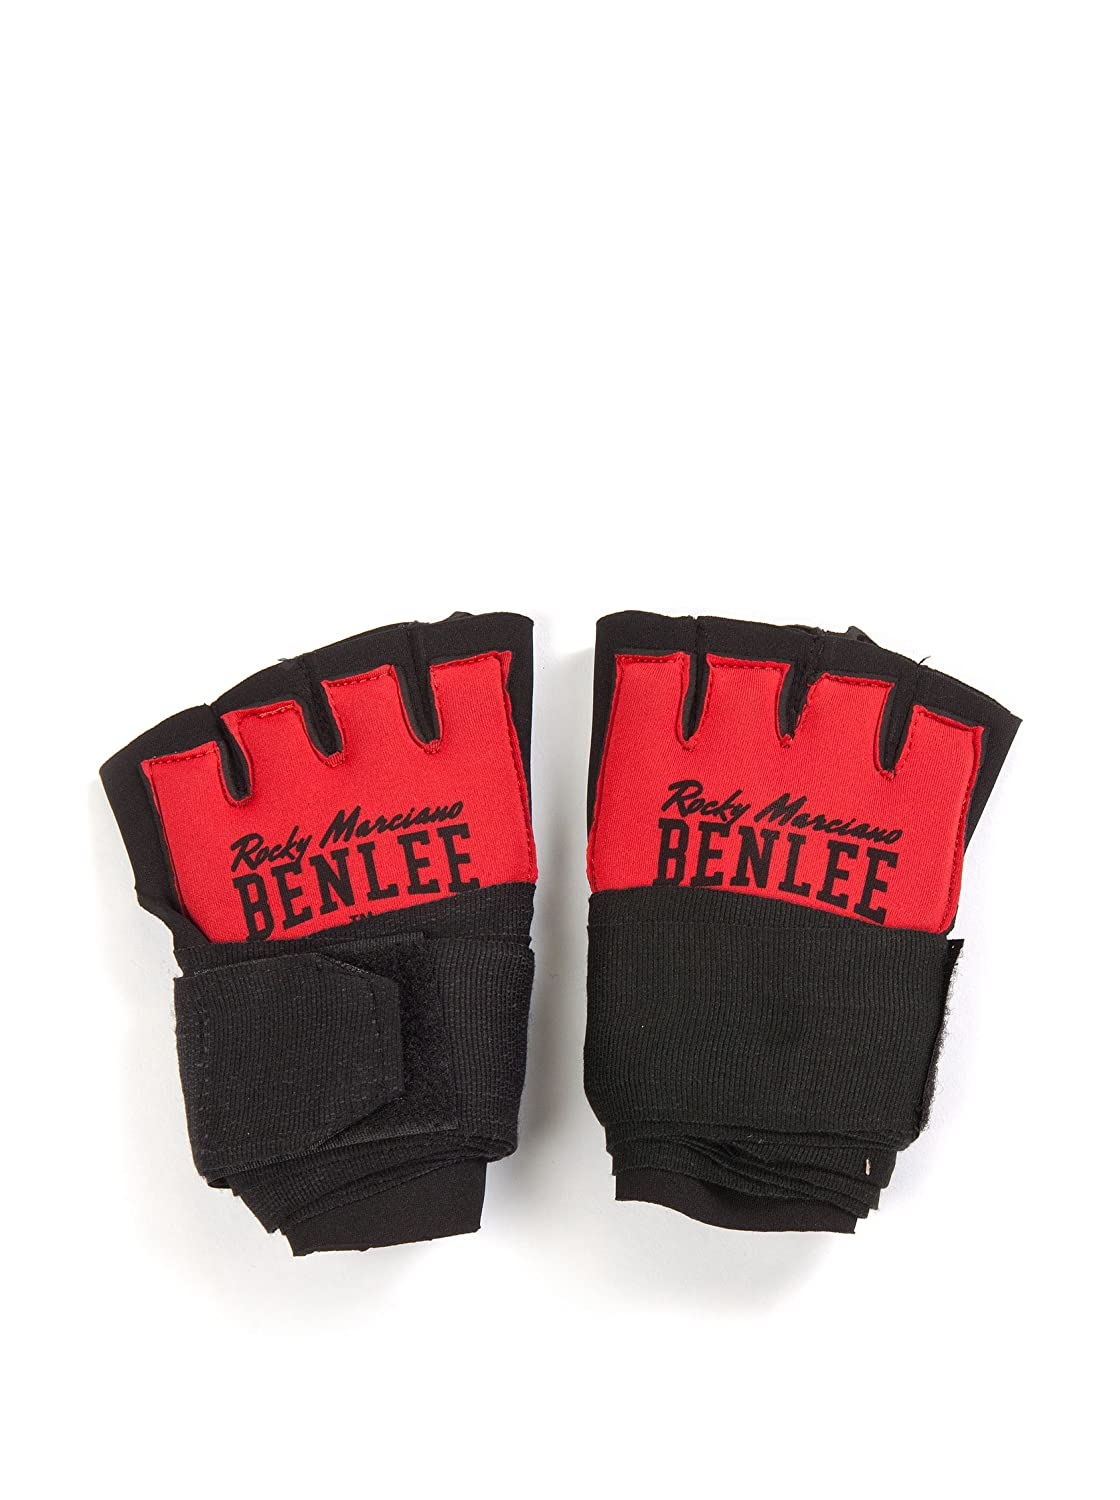 BENLEE Rocky Marciano Neoprenbandage Gelglo Multi-Coloured black/red 198033